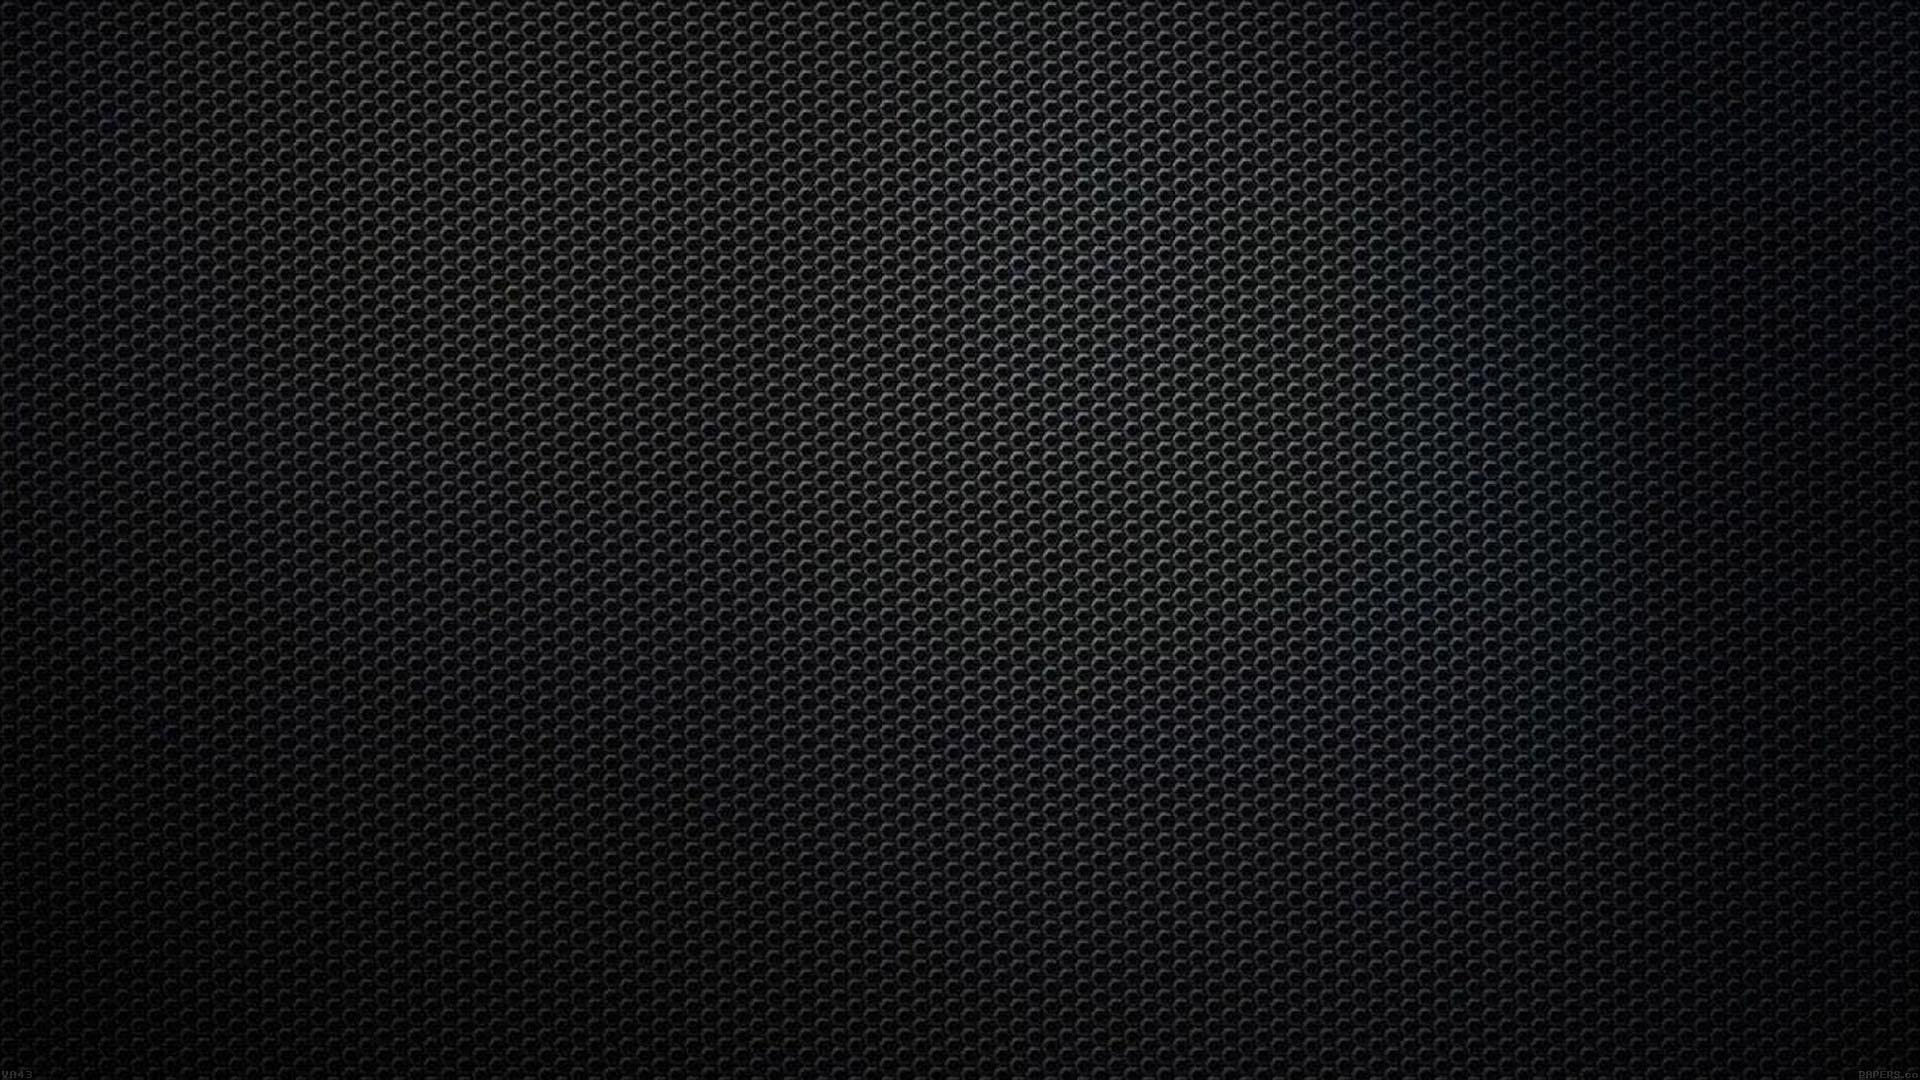 va43-carbon-pattern-black-pattern - Papers.co